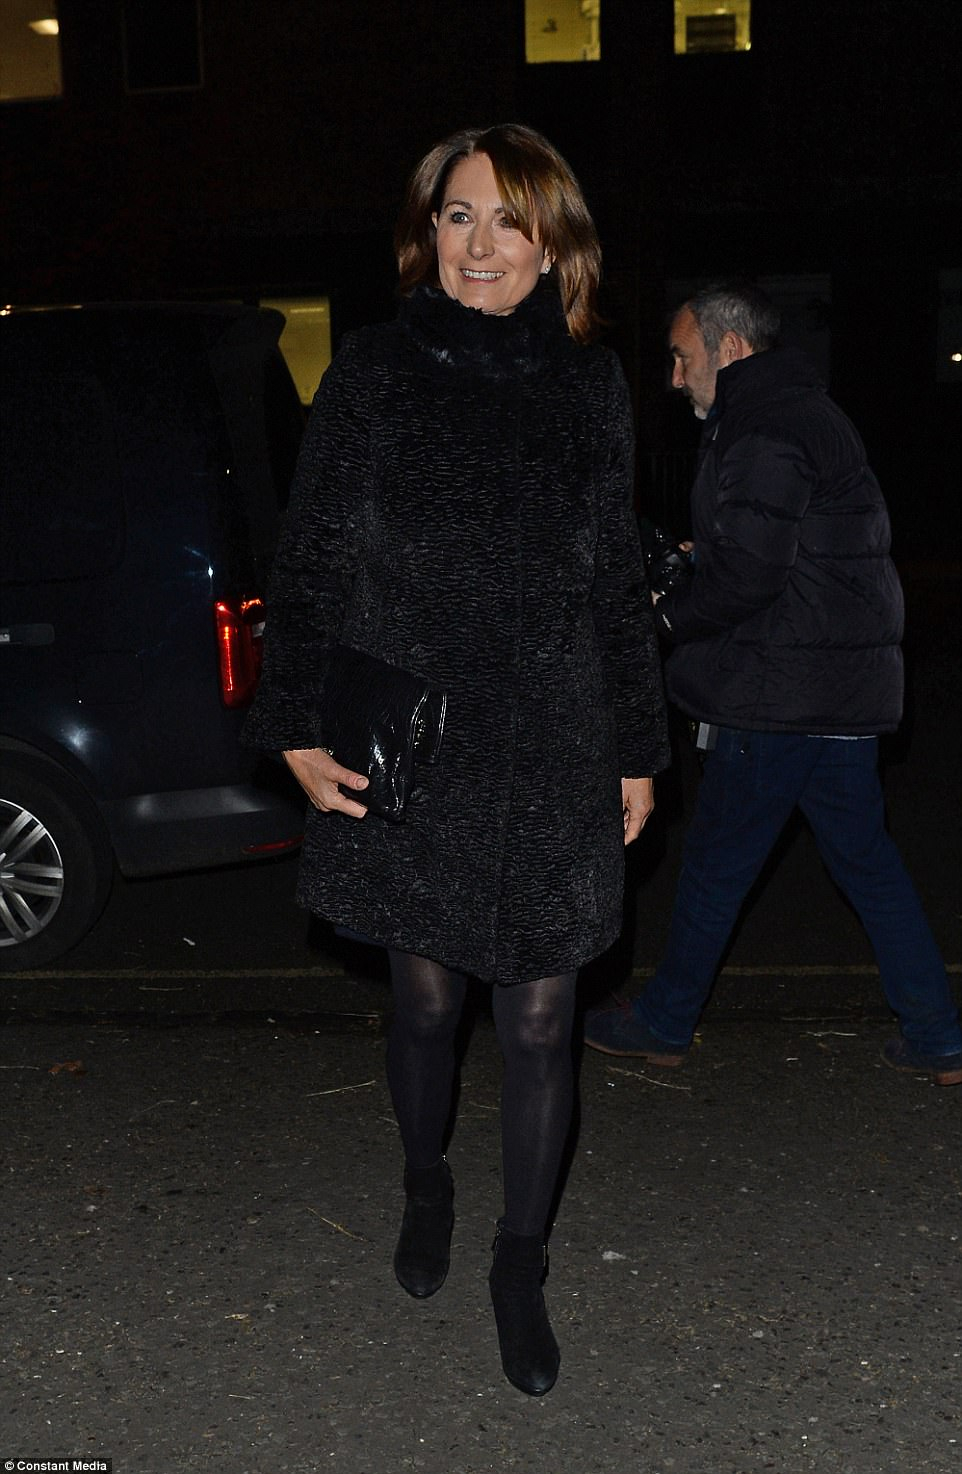 Carole Middleton also attended the carol concert in aid of the charity, which uniquely has both William and his brother Prince Harry as patrons